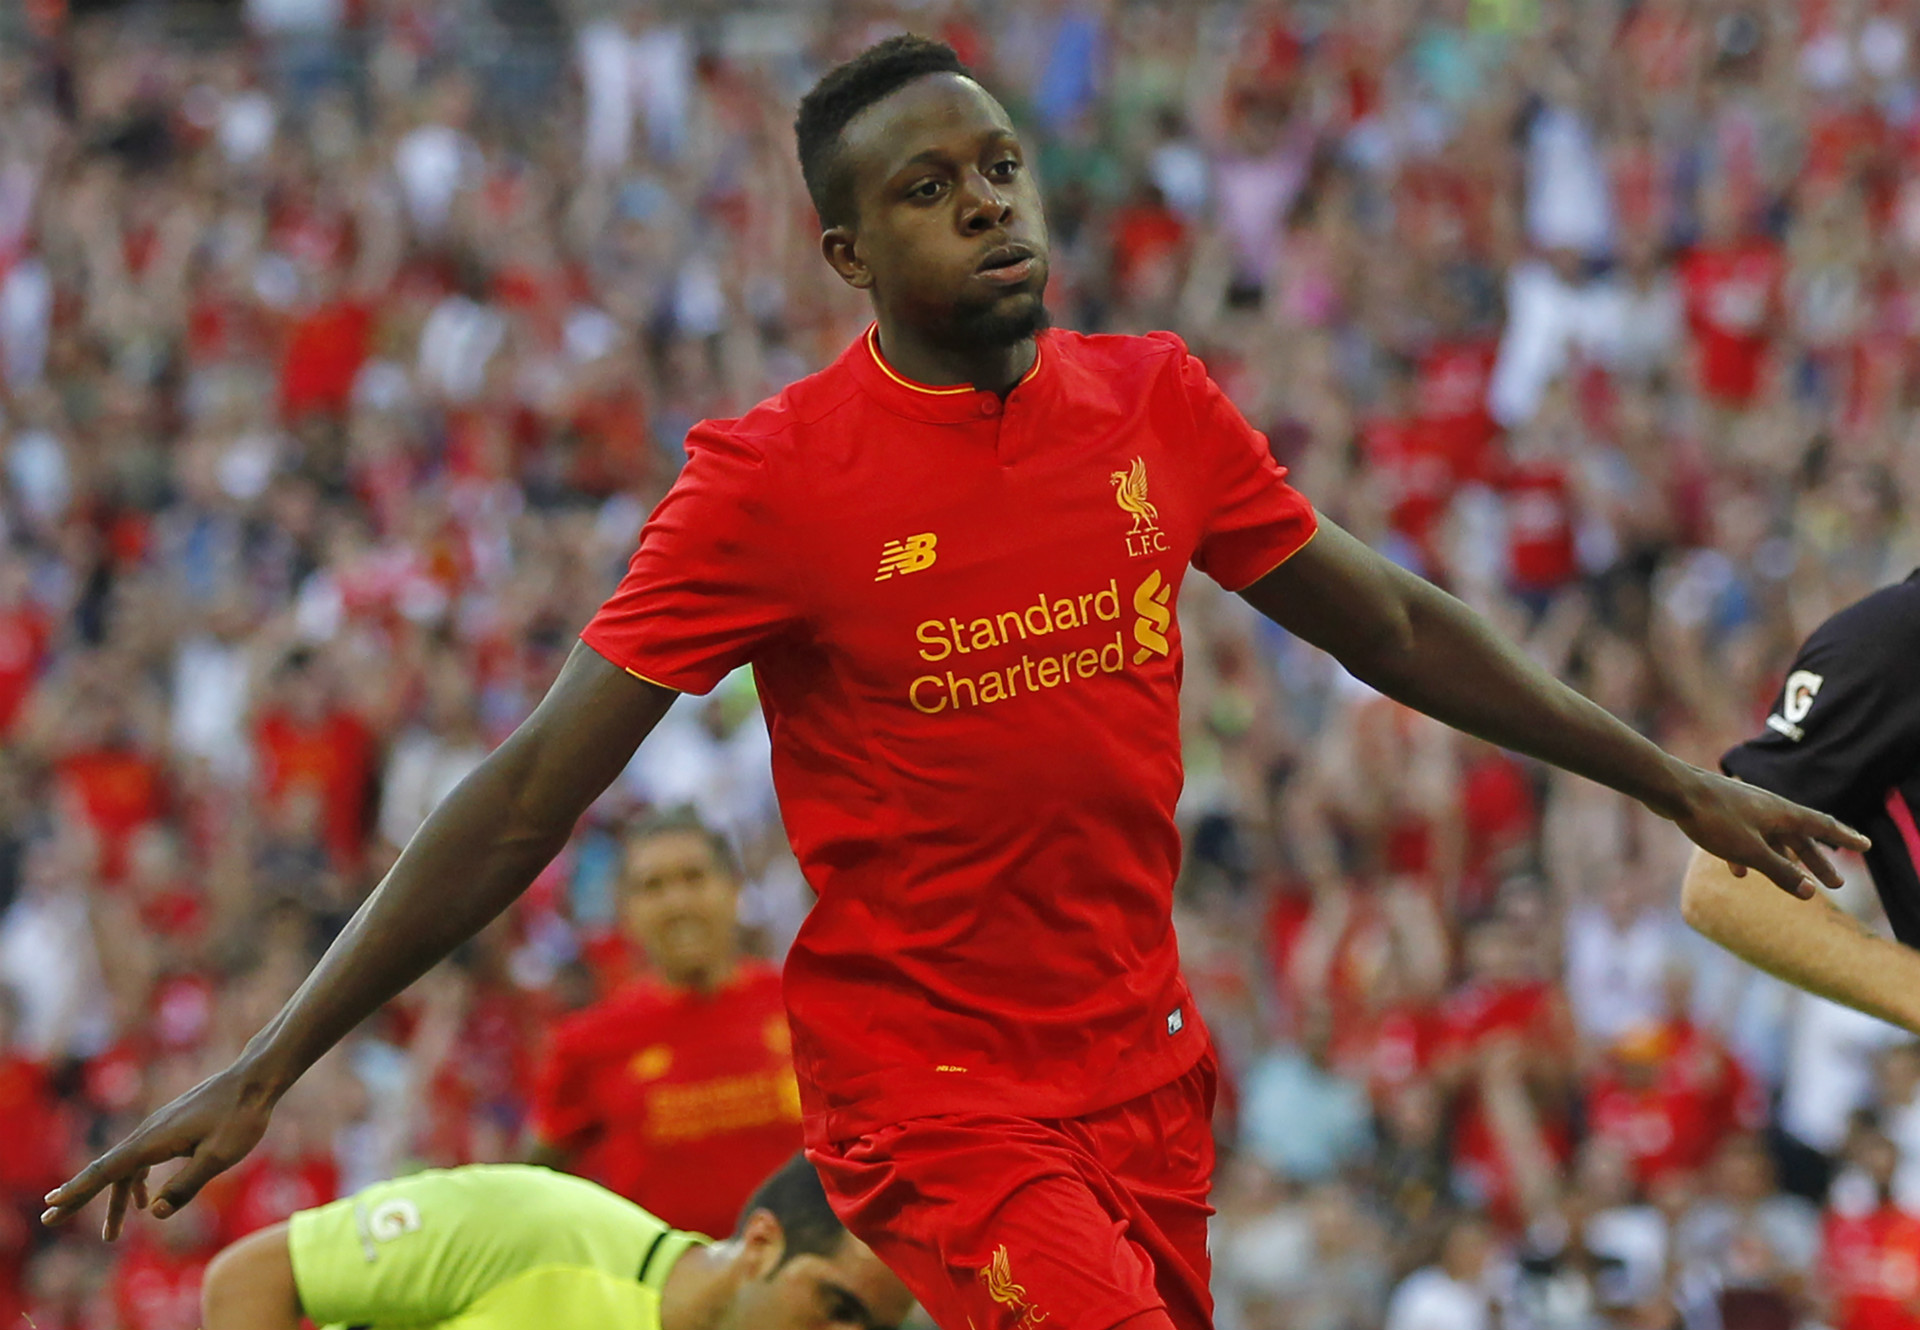 Liverpool thrashes Barcelona 4-0, Mane gets his 1st goal